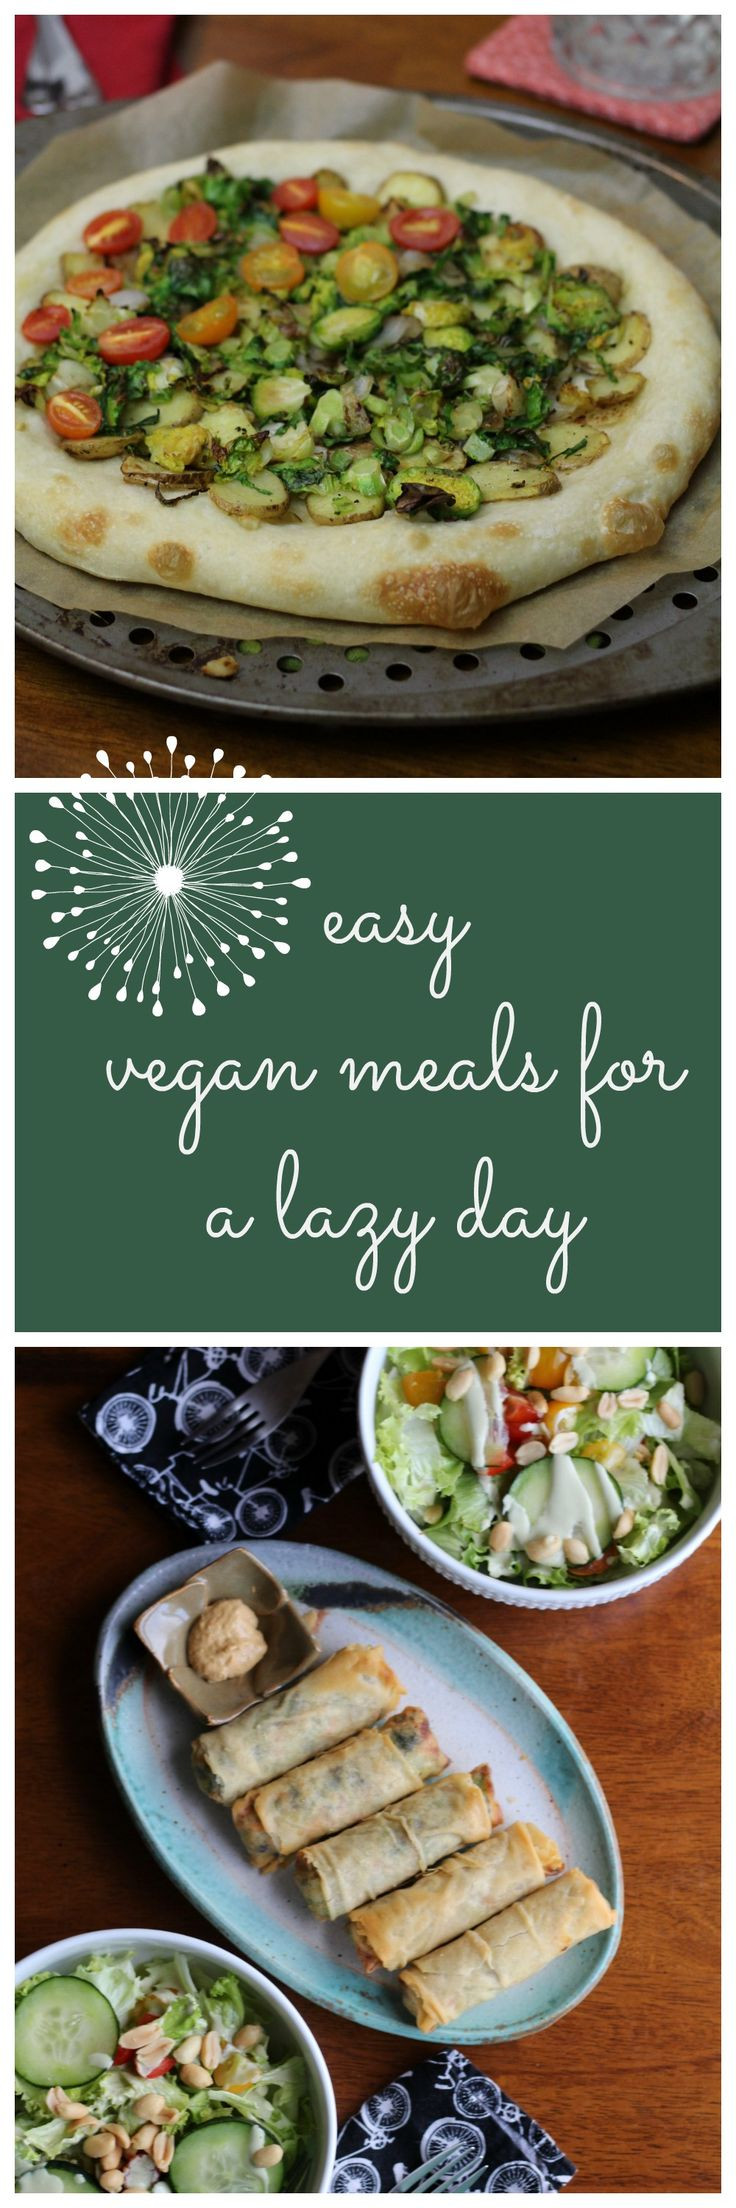 Lazy Vegan Recipes  Best 25 Lazy Days ideas on Pinterest